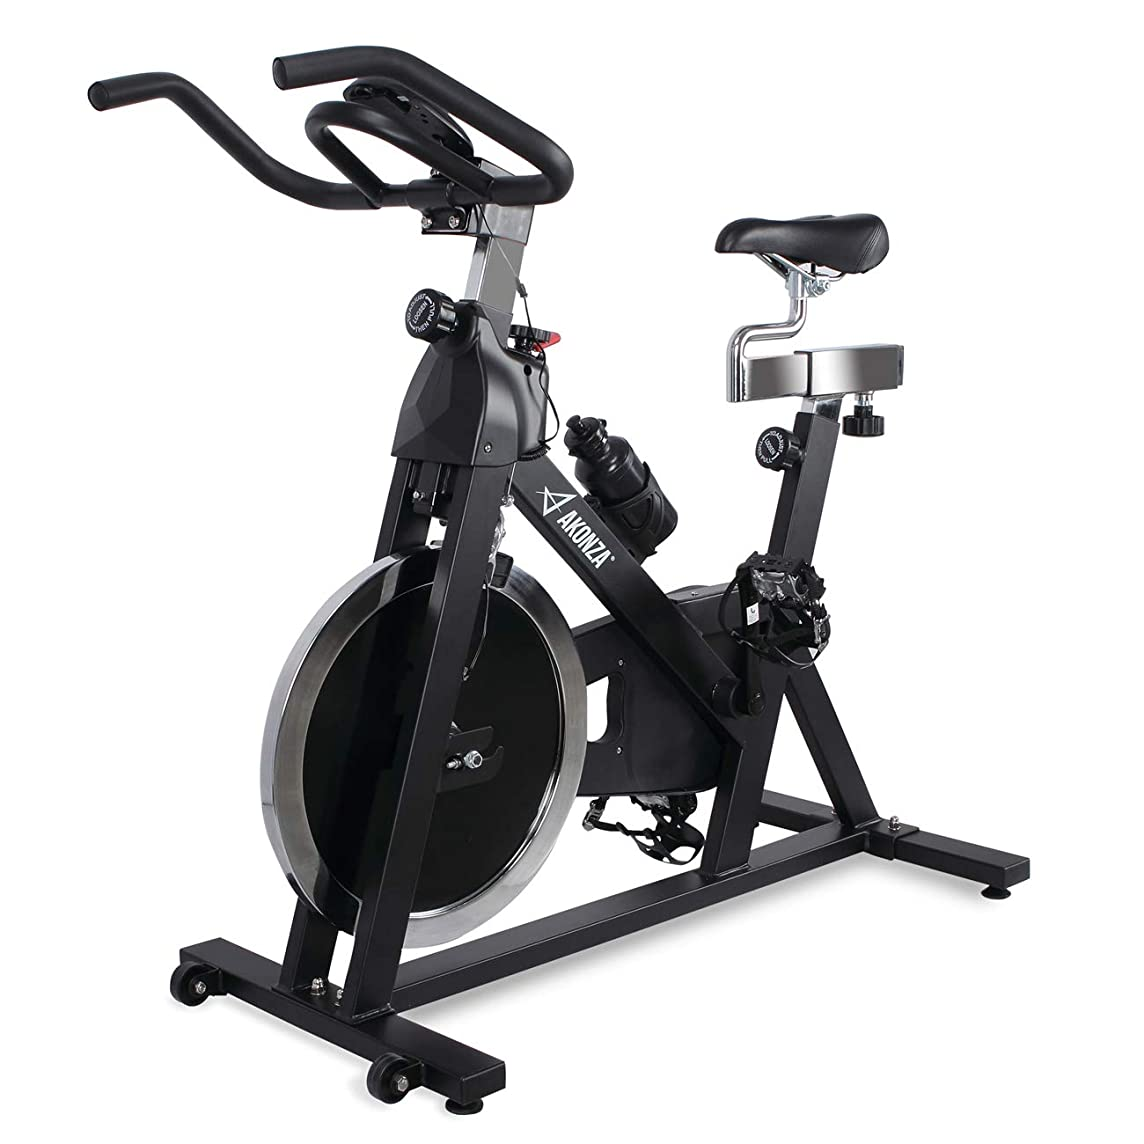 Akonza Indoor Cycle Bike Cycling Trainer Exercise Bike w/ 40 lb Flywheel Stationary Bicycle LCD Monitor, Black